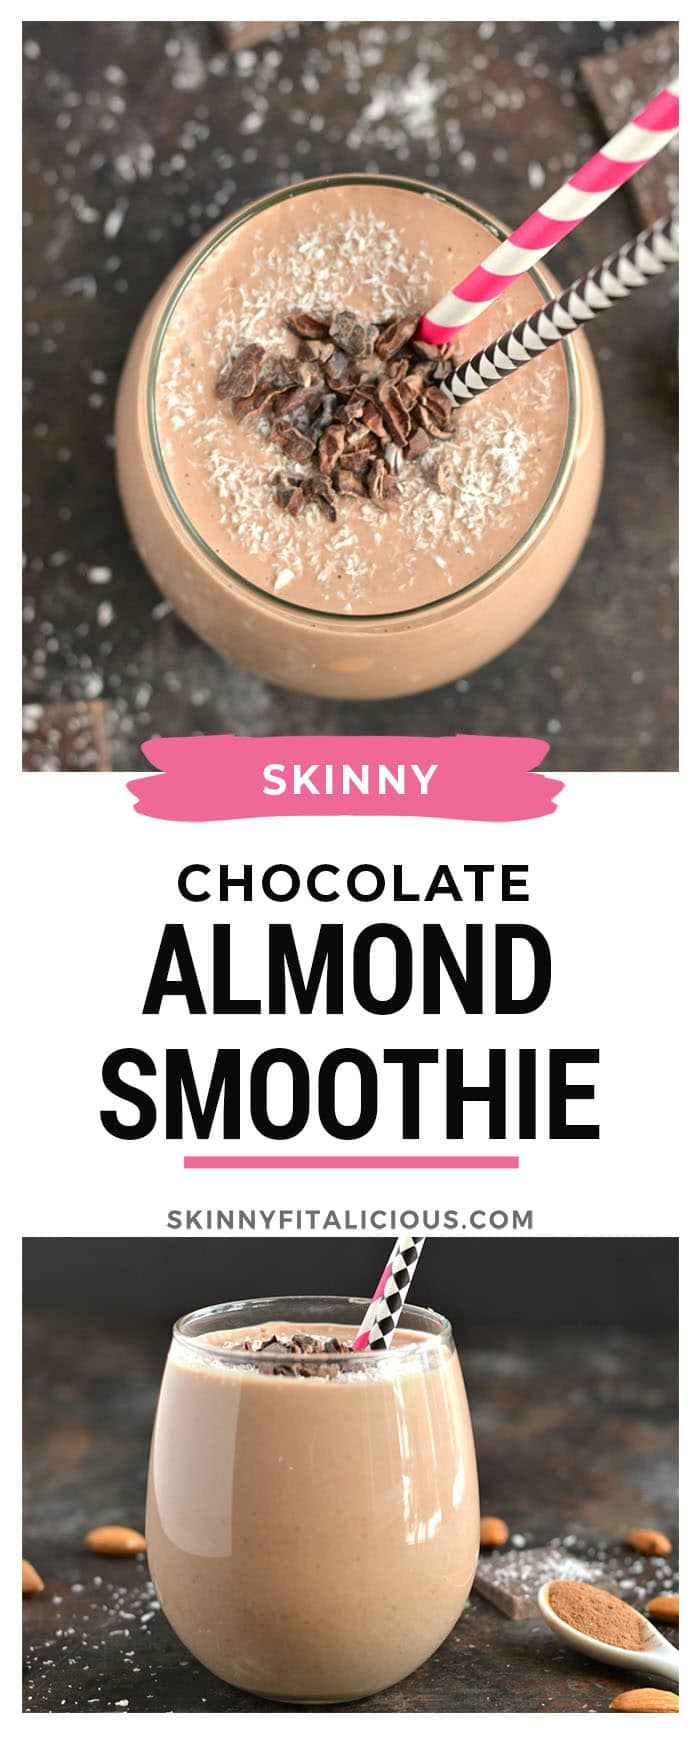 Start your day with a thick and creamy Chocolate Almond Smoothie more like desire than breakfast. This gluten free, low calorie smoothie (with Vegan option) is what dreams are made of!Start your day with a thick and creamy Chocolate Almond Smoothie more like desire than breakfast. This gluten free, low calorie smoothie (with Vegan option) is what dreams are made of!